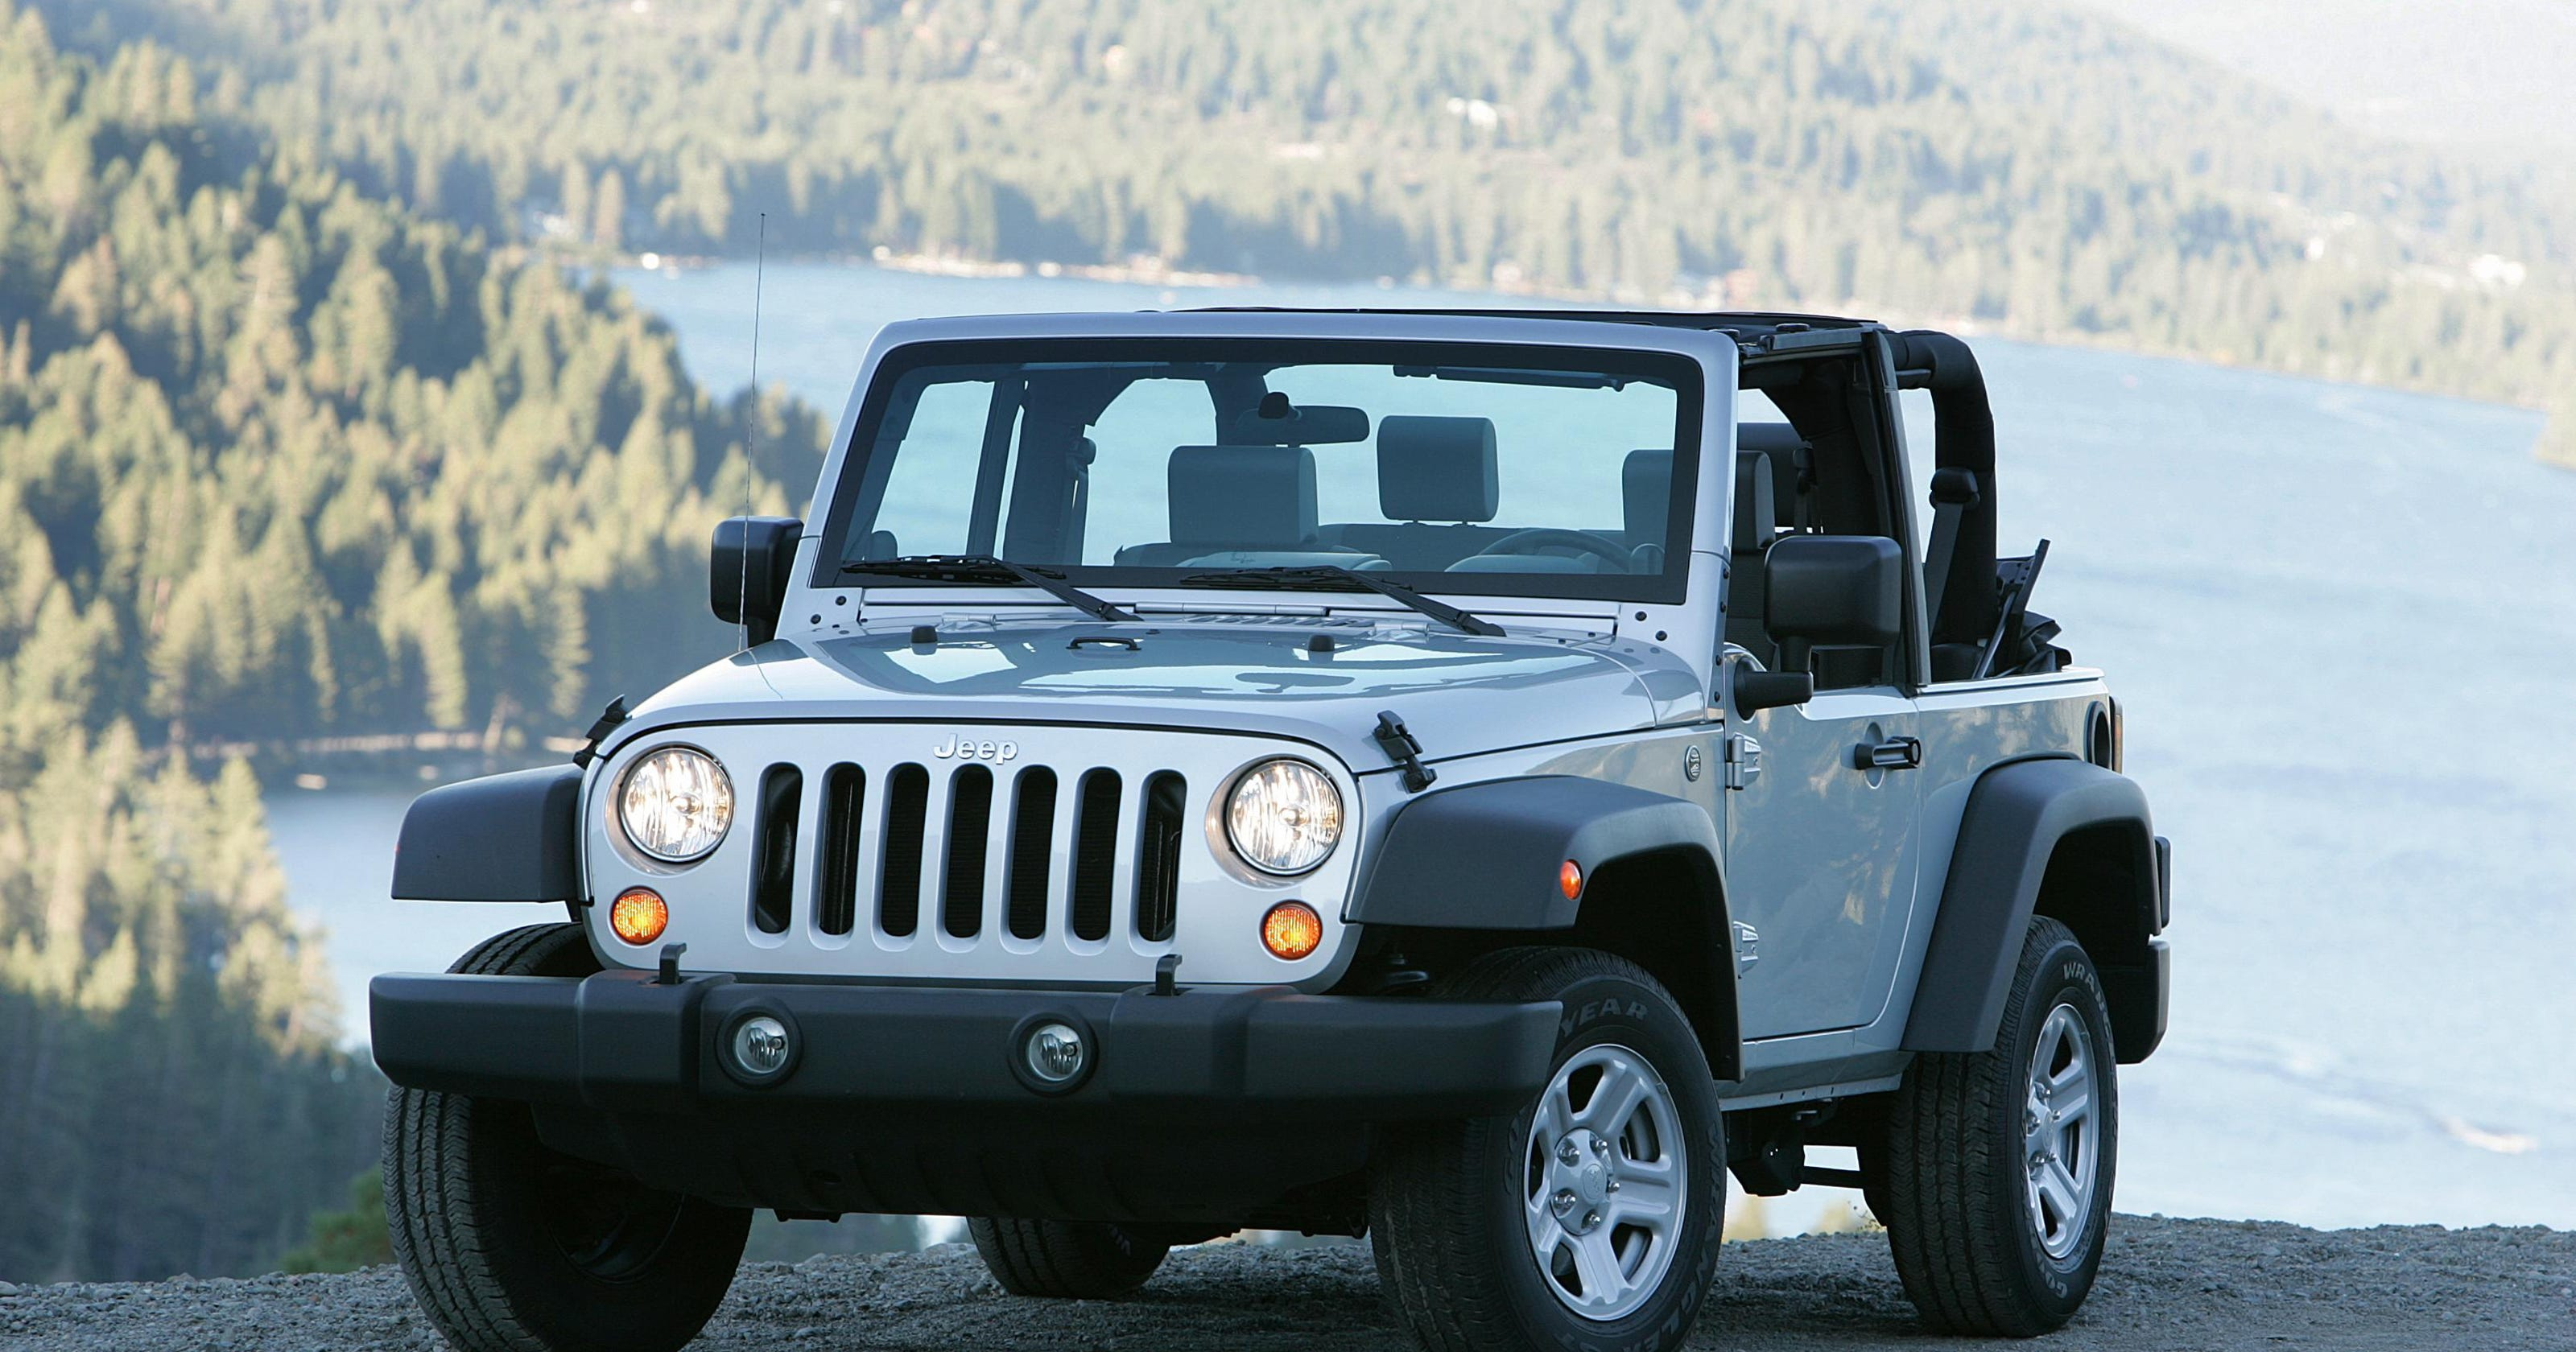 Fiat Chrysler recalling 500,000 Jeep Wranglers